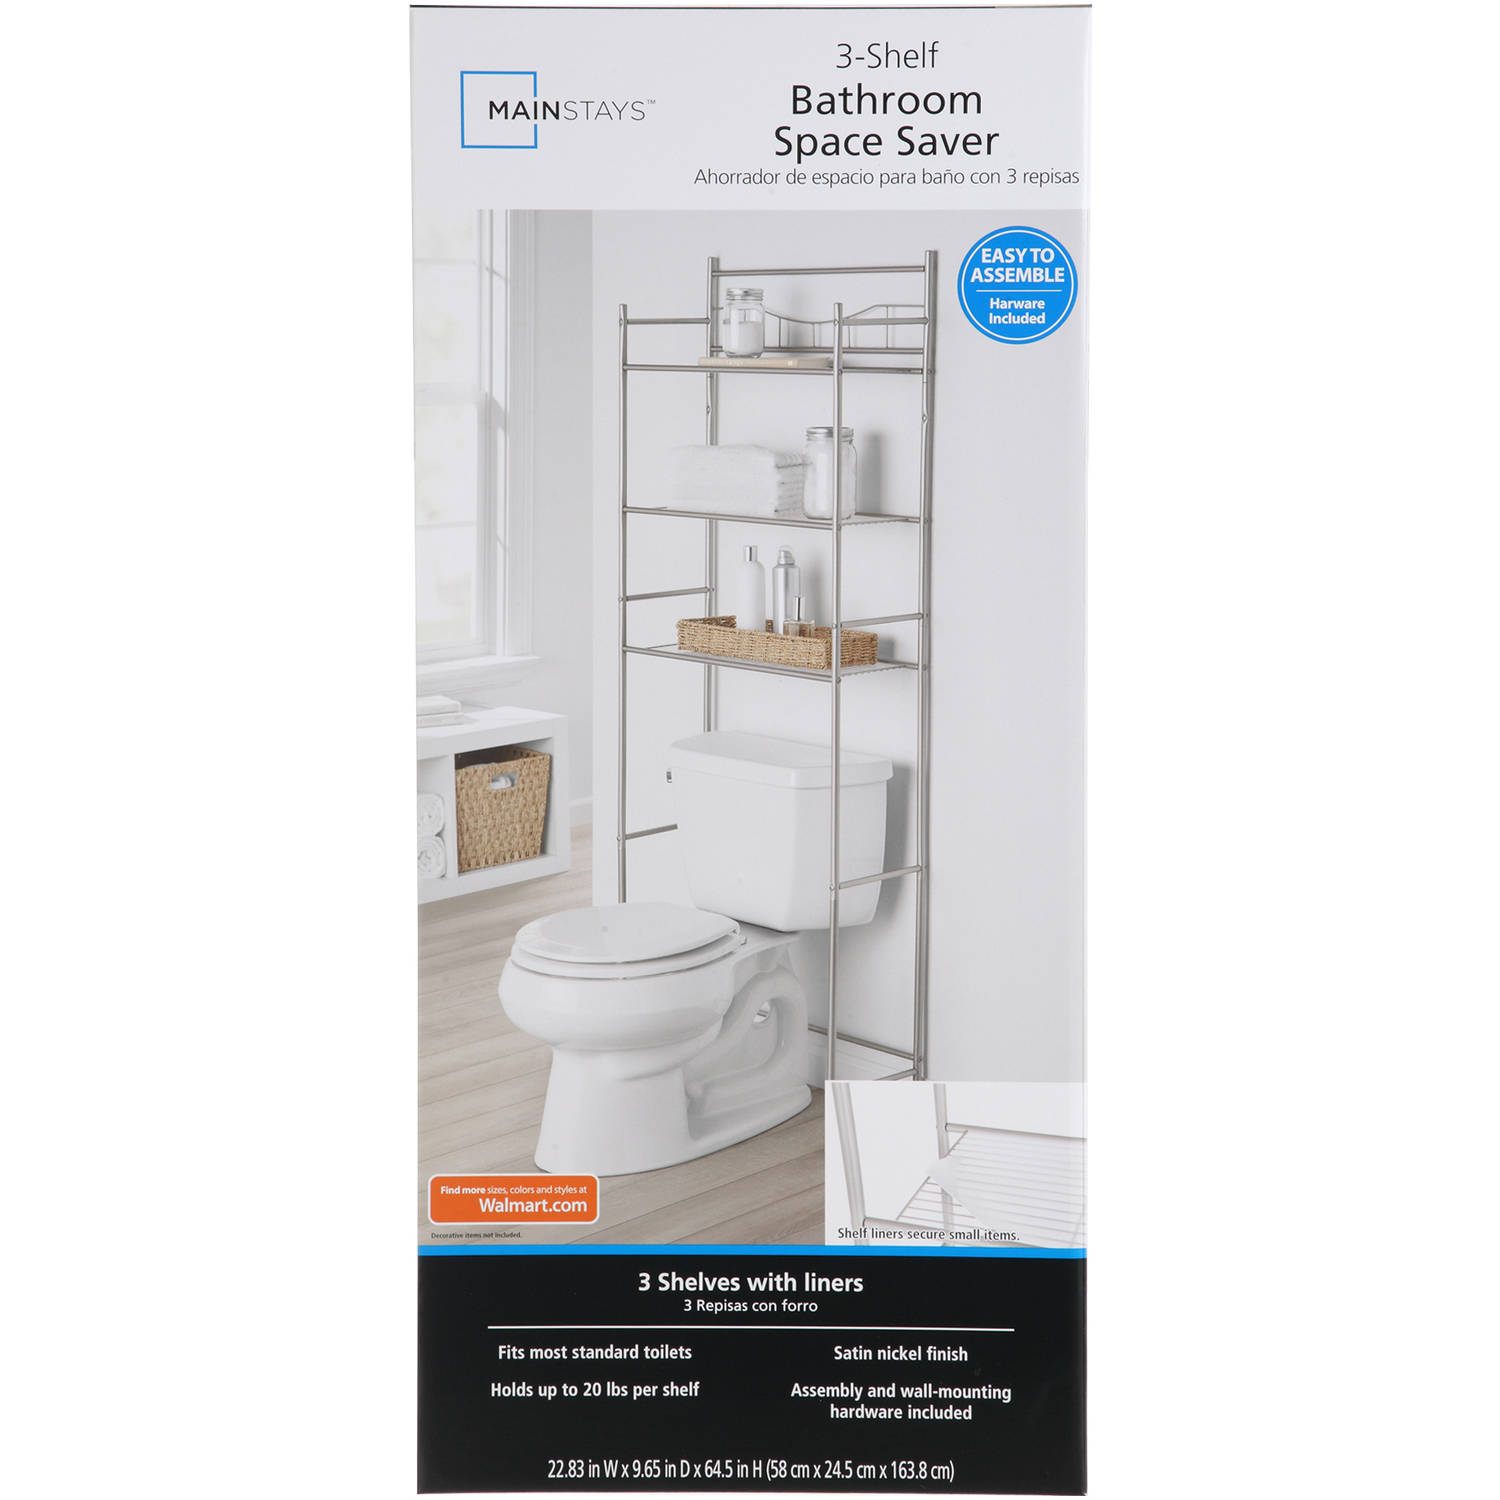 Mainstays 3-Shelf Bathroom Space Saver with Liner, Satin Nickel ...